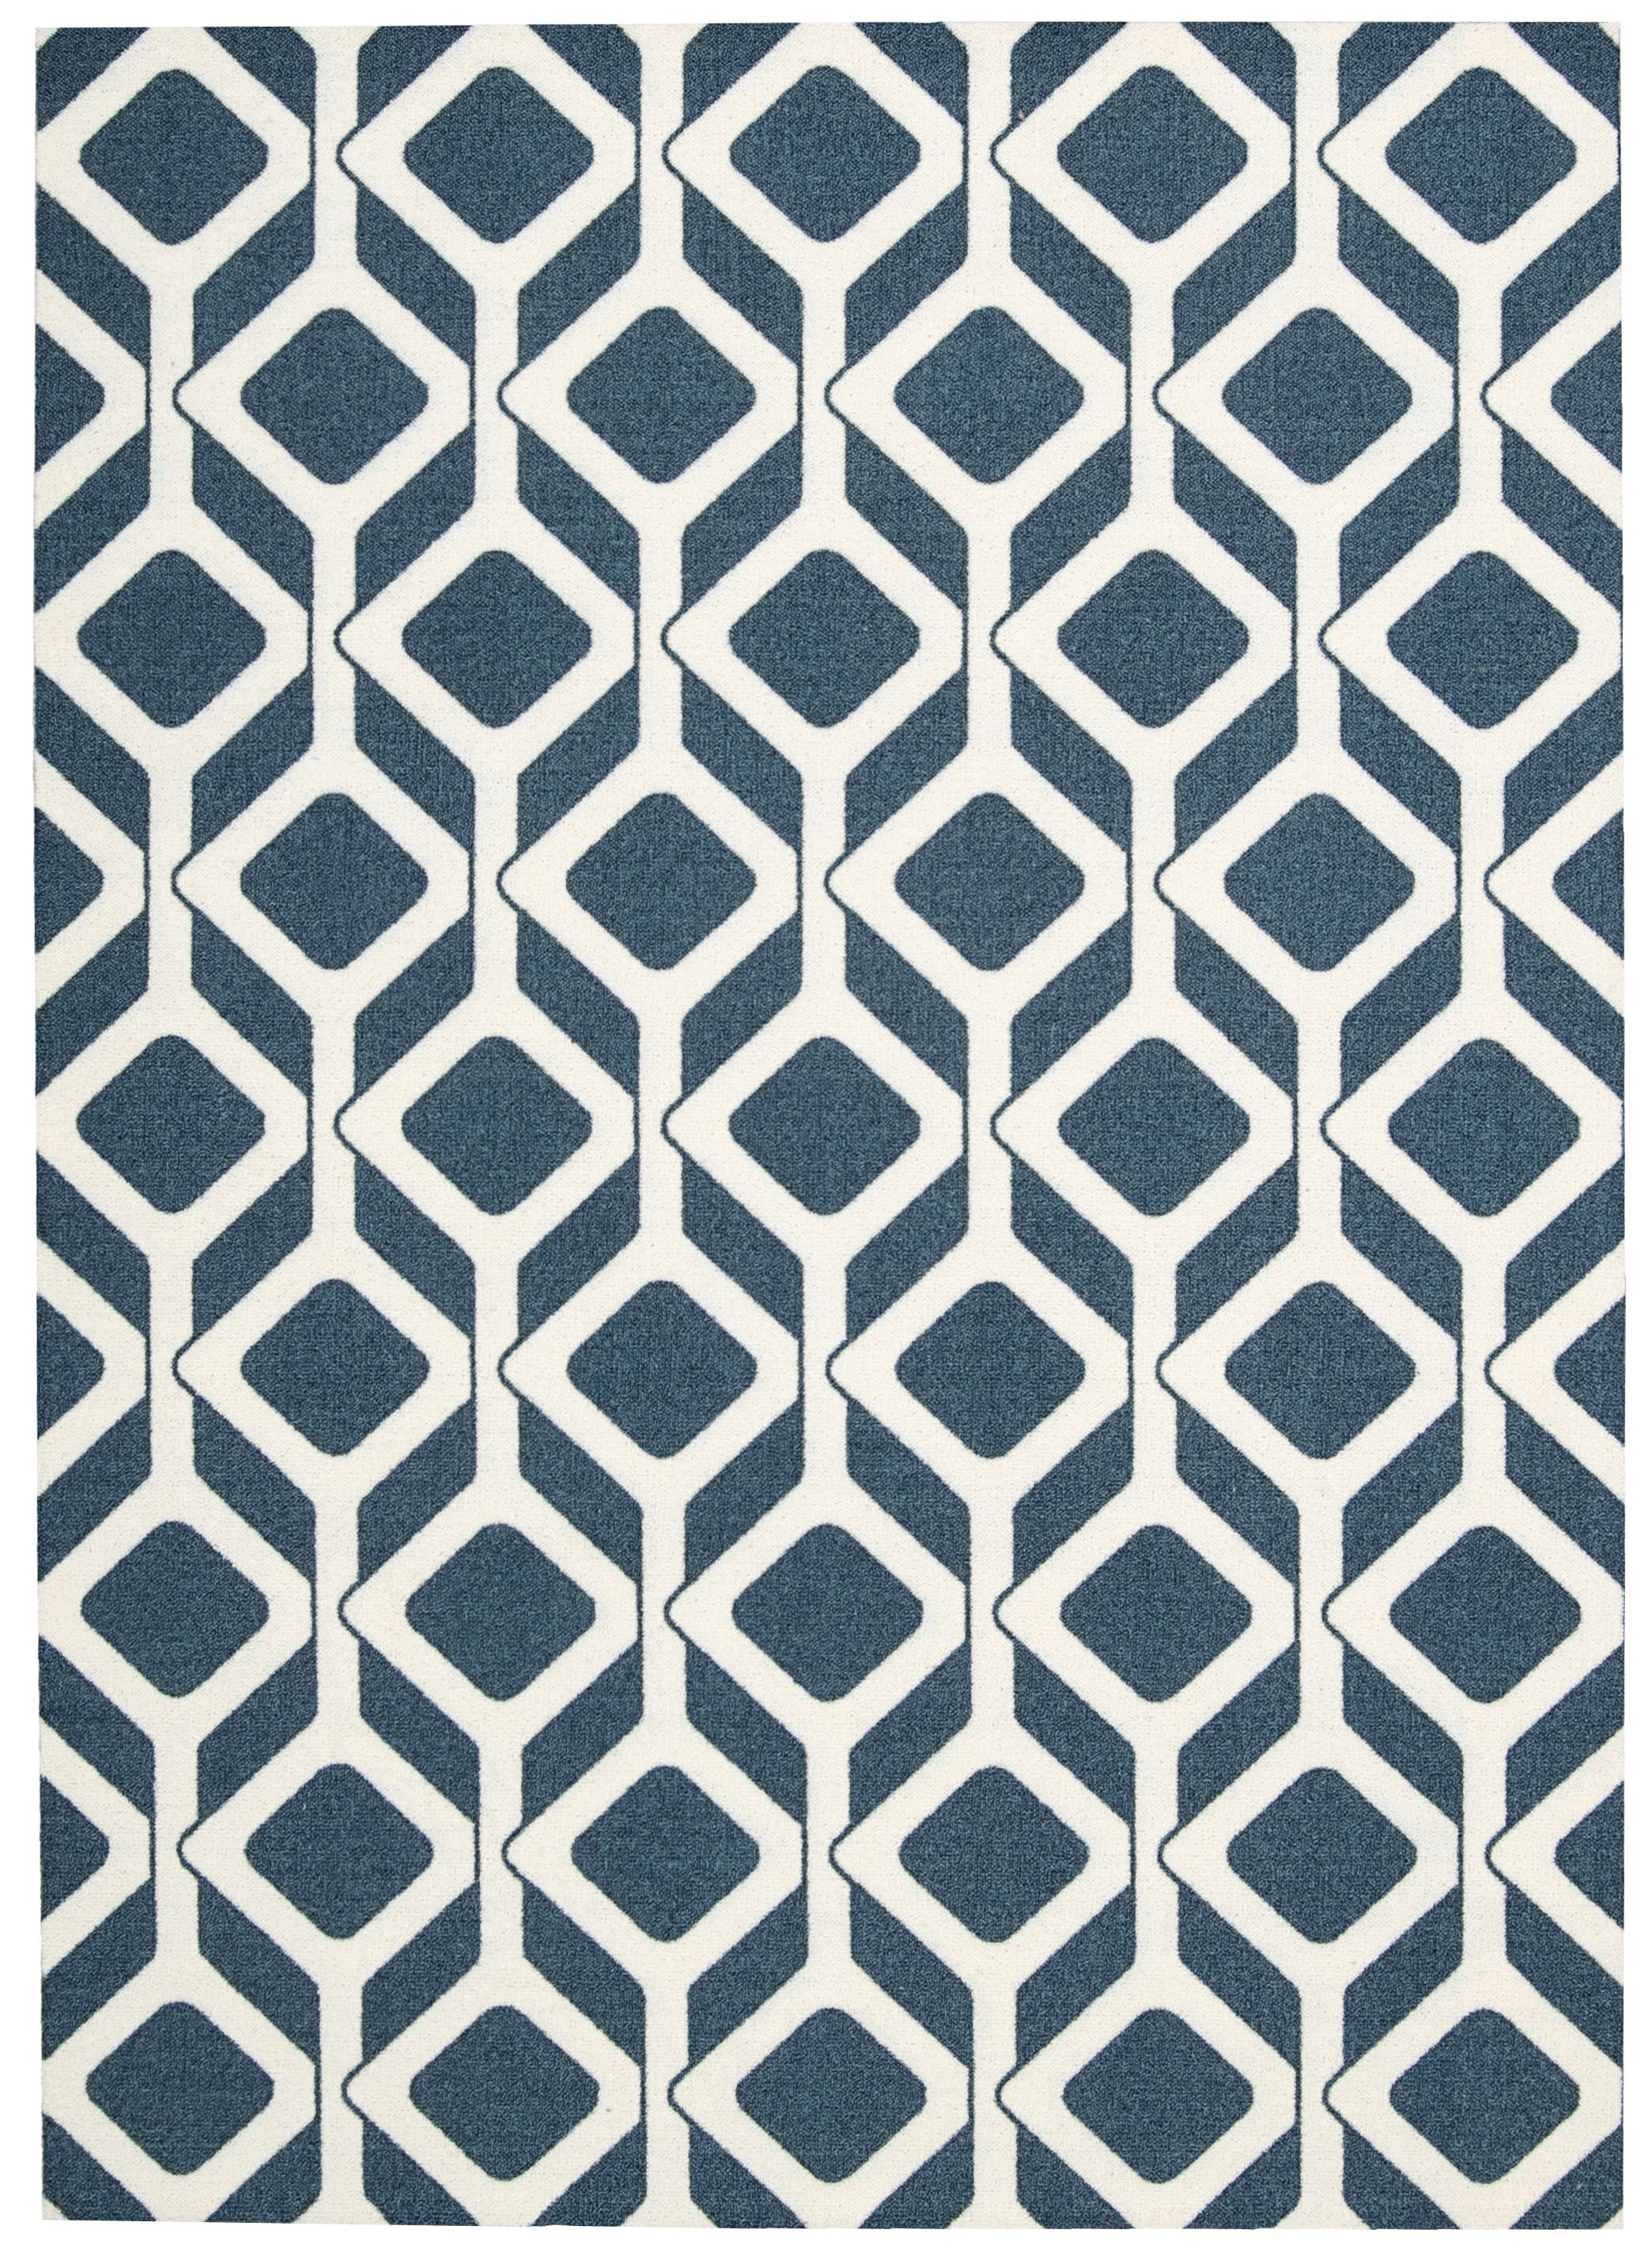 Kalypso Navy Area Rug Rug Size: Rectangle 5' x 7'